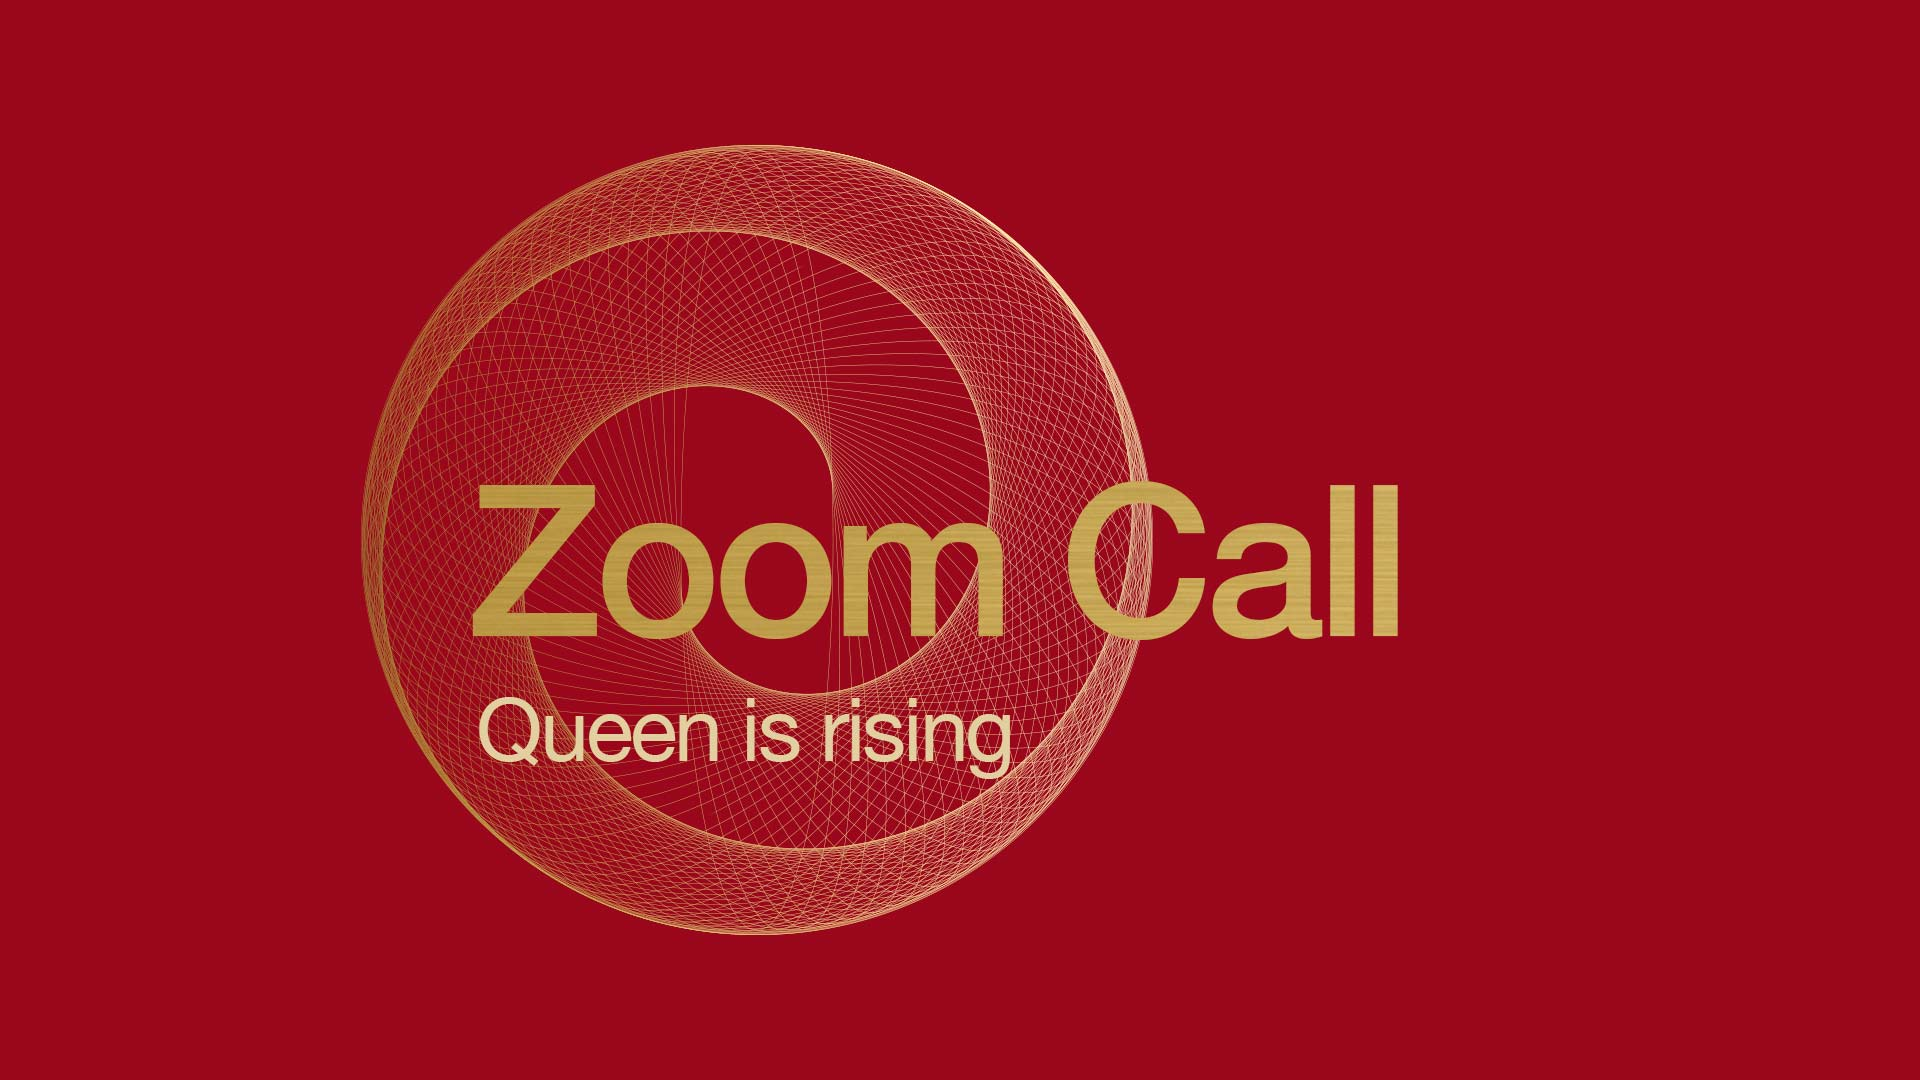 Queen is rising Zoom Call